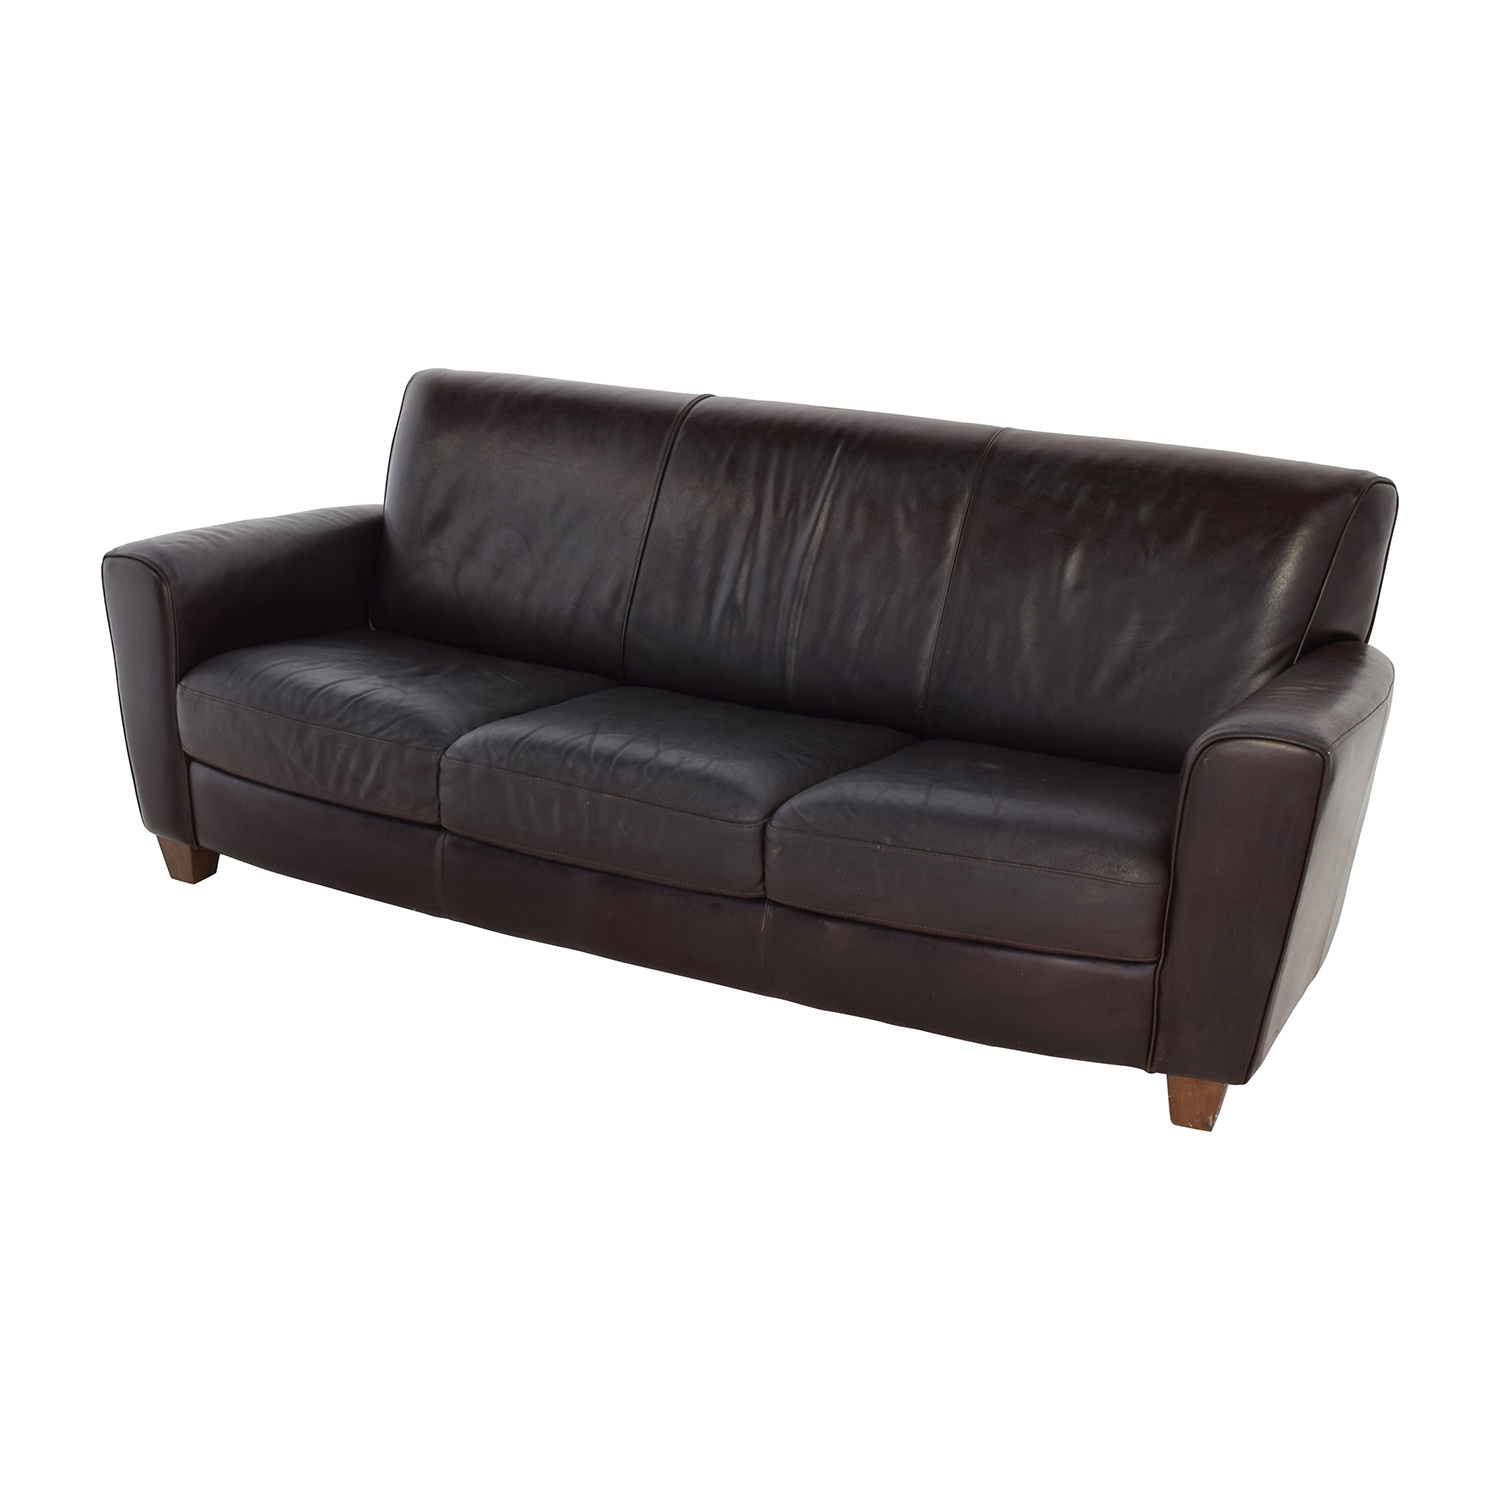 Cushions For Brown Leather Sofas 90 Off Brown Leather Three Cushion Sofa Sofas